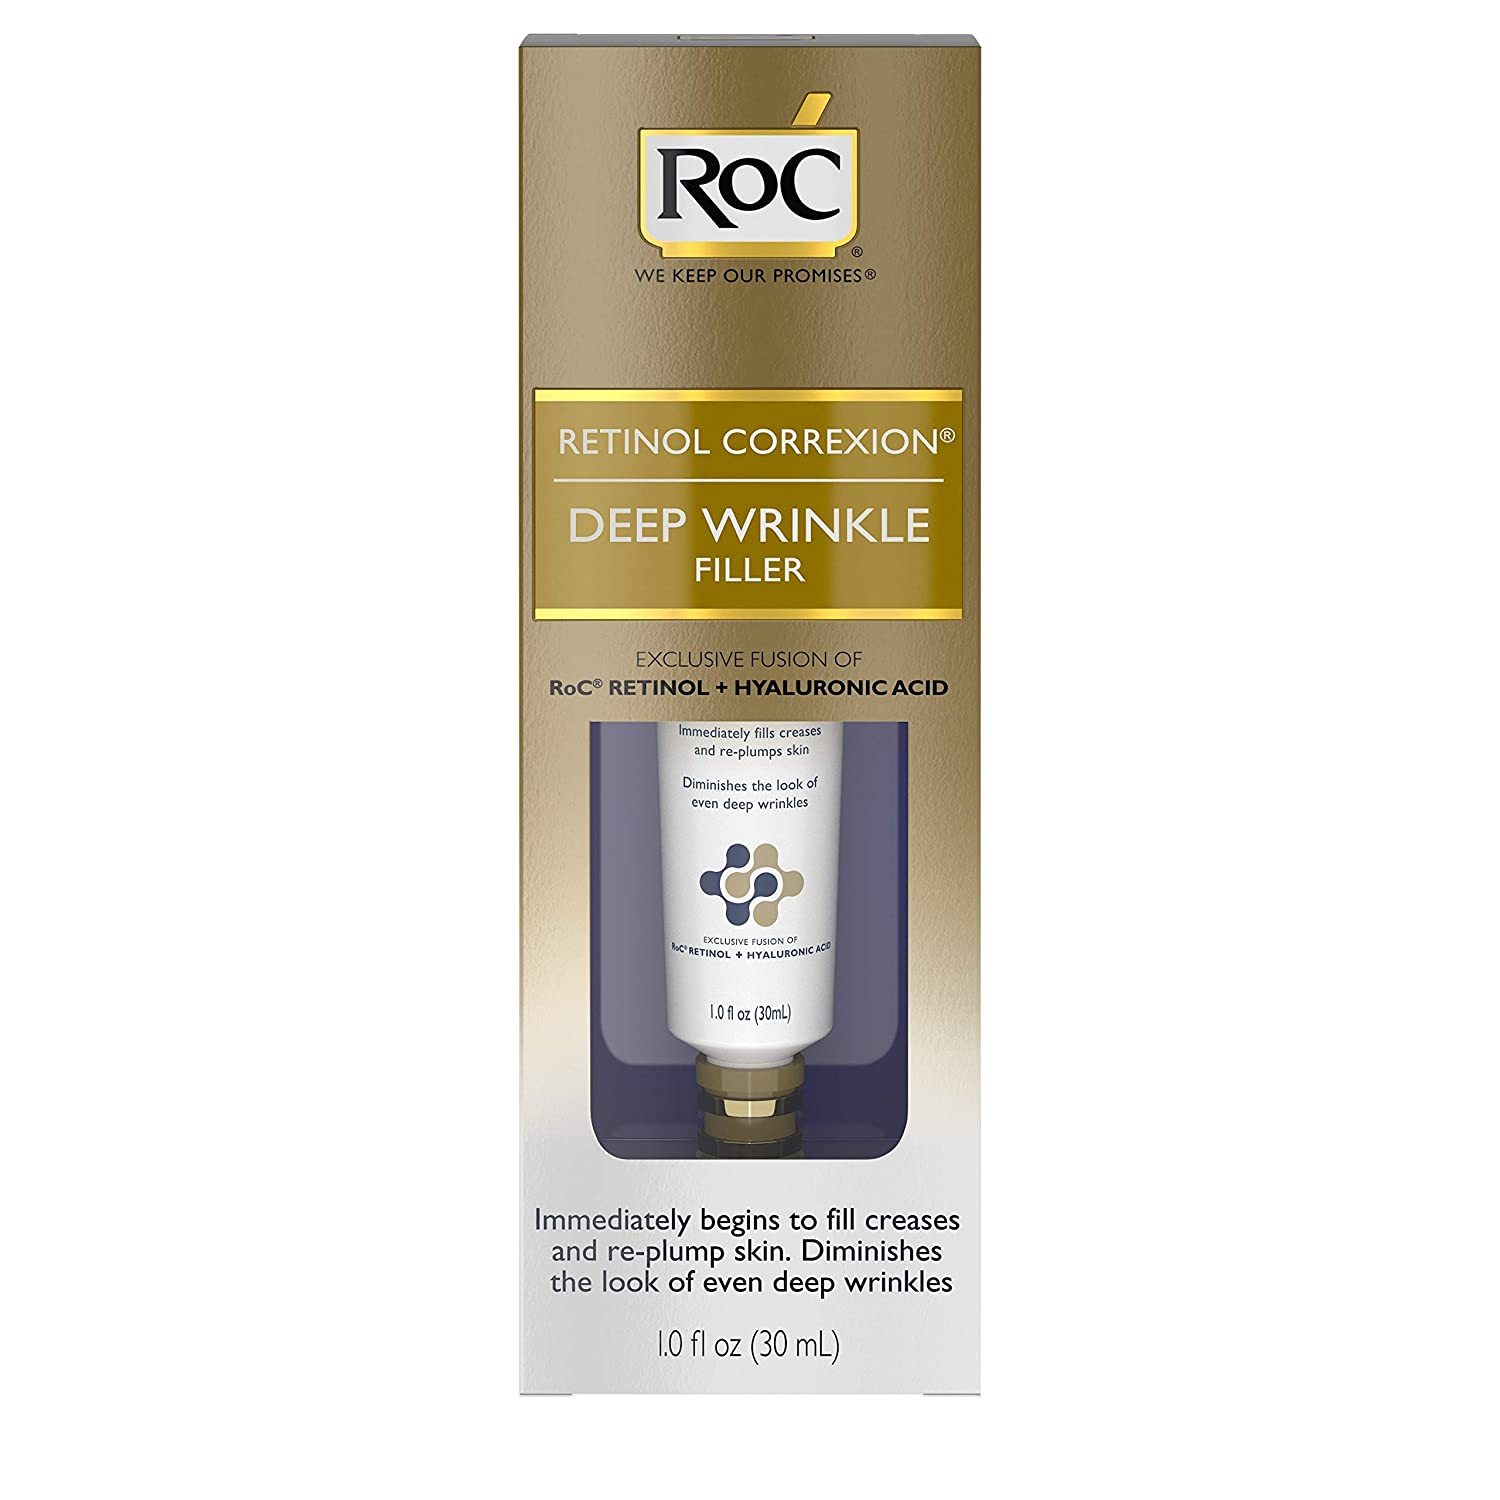 RoC Retinol Correxion Deep Wrinkle Facial Filler, Anti-Aging Treatment with  Hyaluronic Acid and Retinol, Non